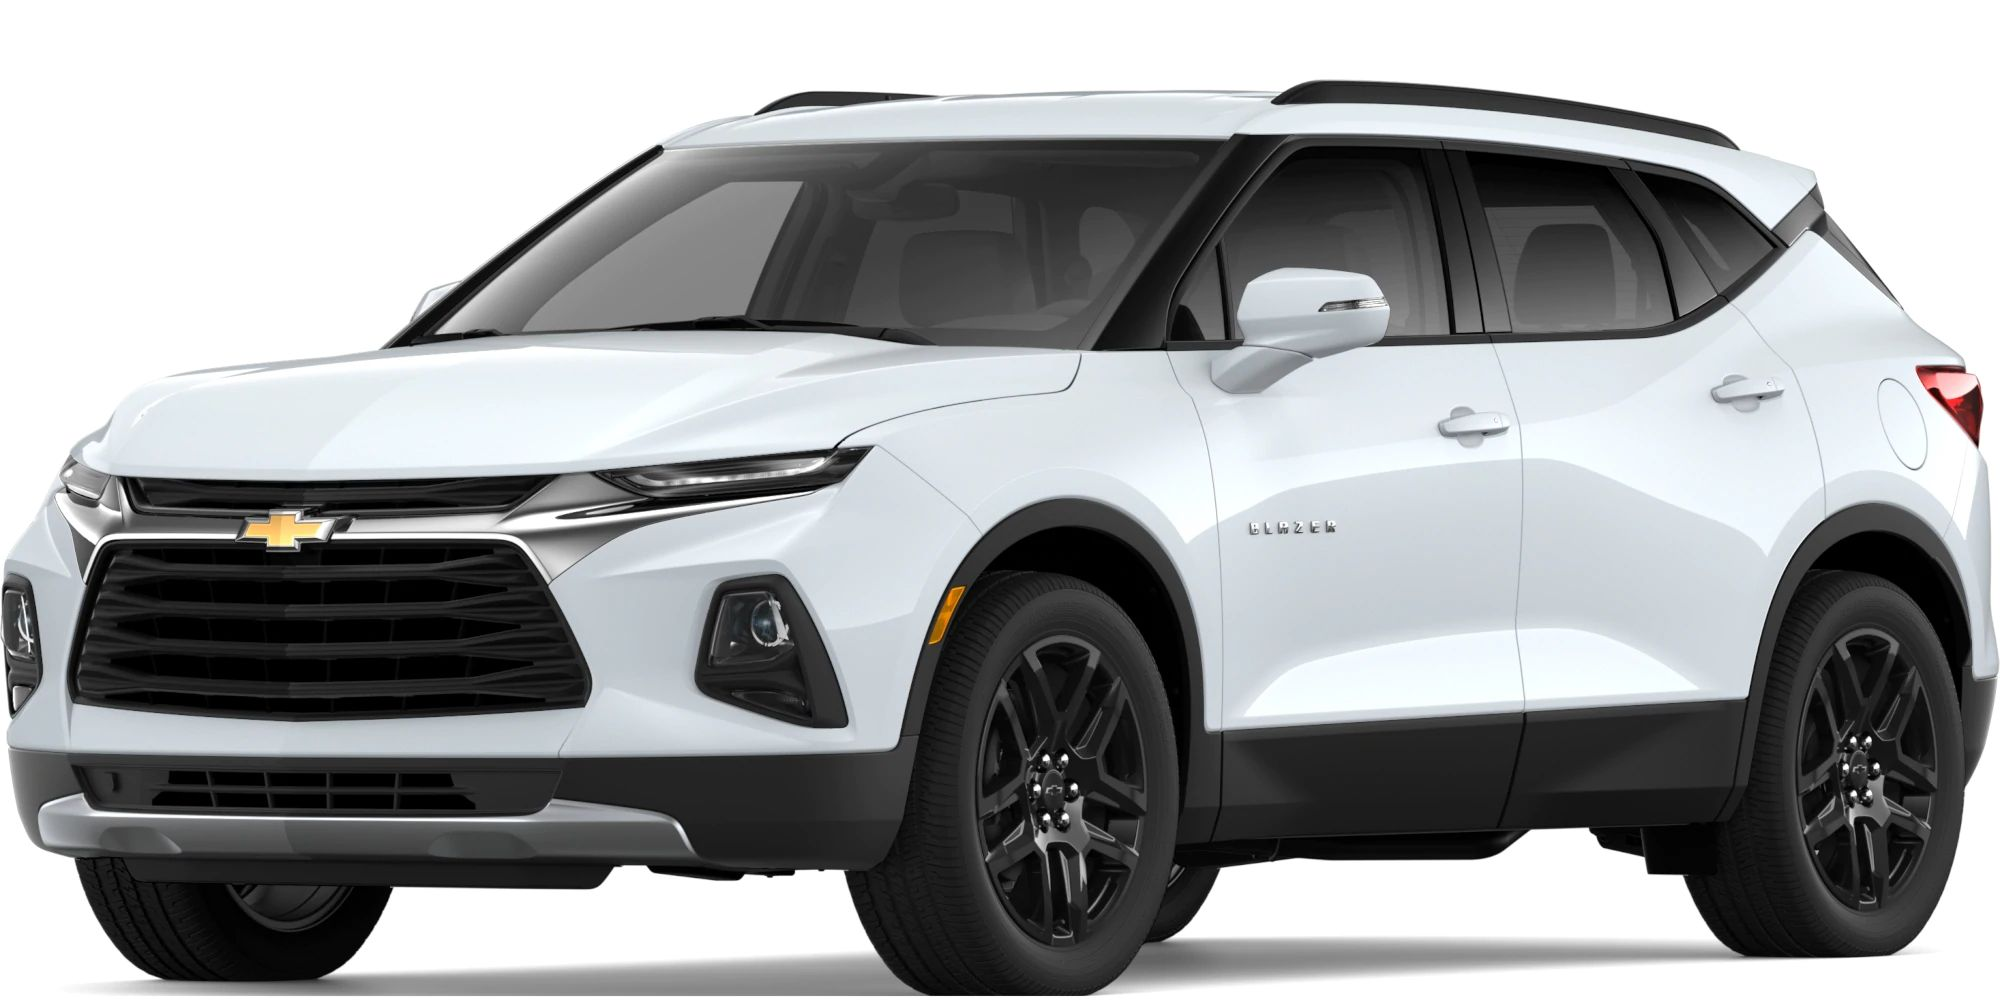 2019 Chevy Blazer Exterior Driver Side Front Profile in Summit White